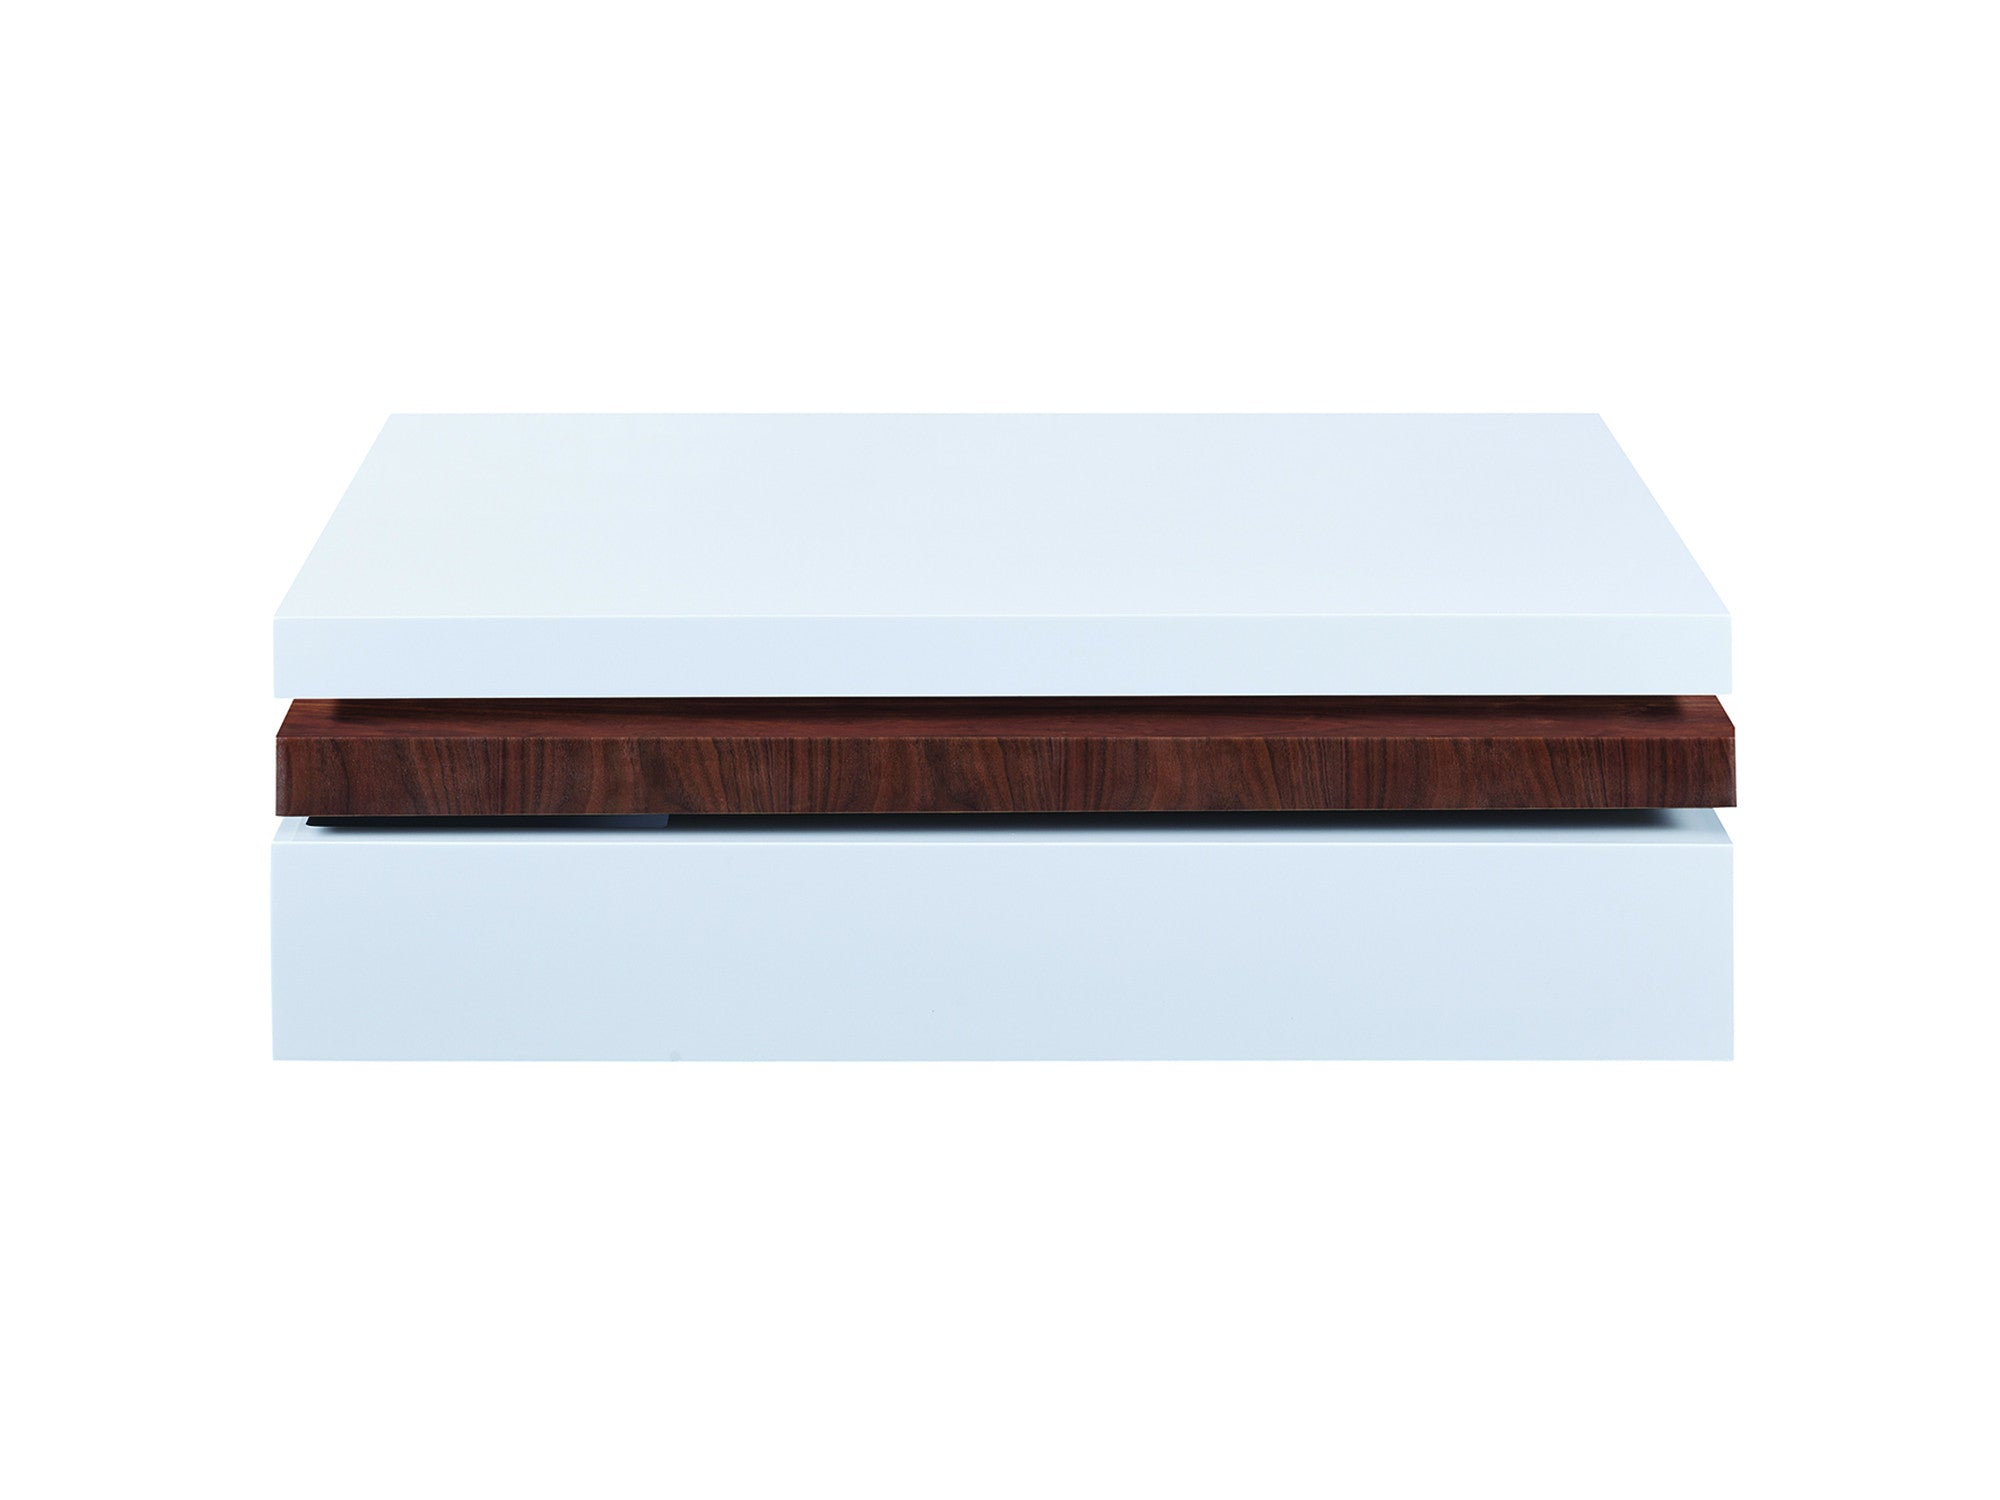 Newell furniture pivot coffee table walnut meubles for Meuble brossard